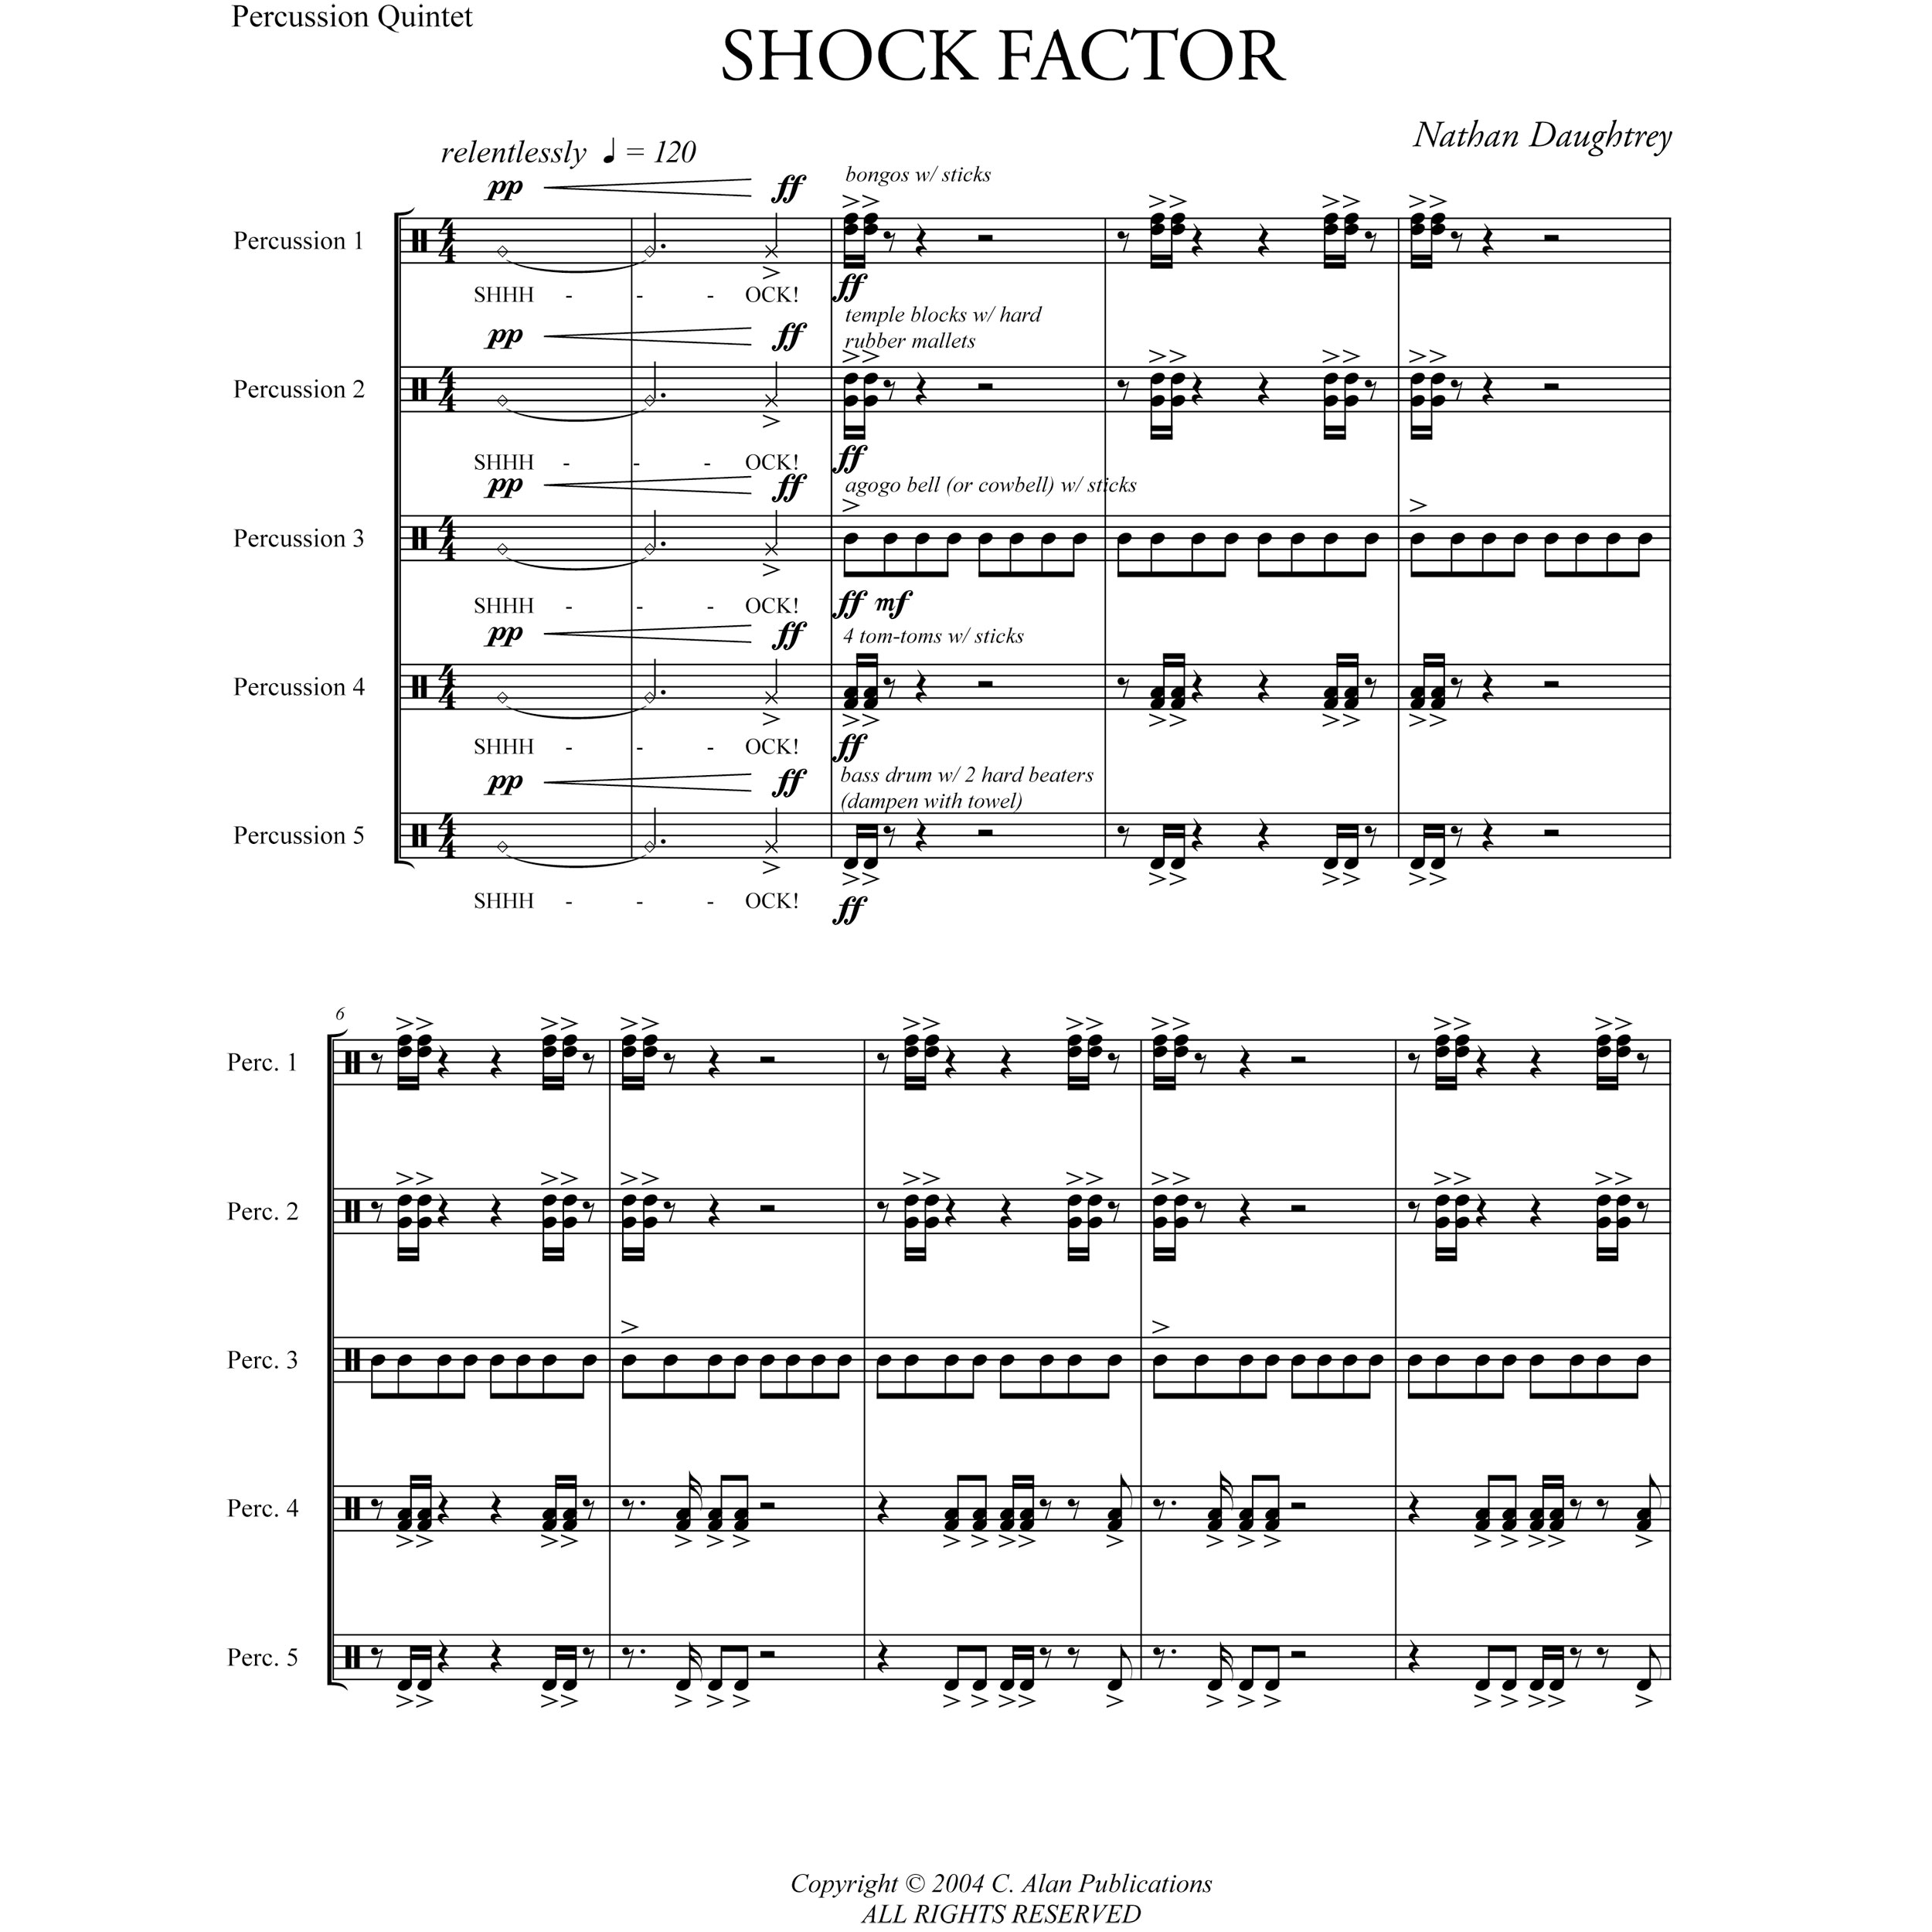 Shock Factor by Nathan Daughtrey